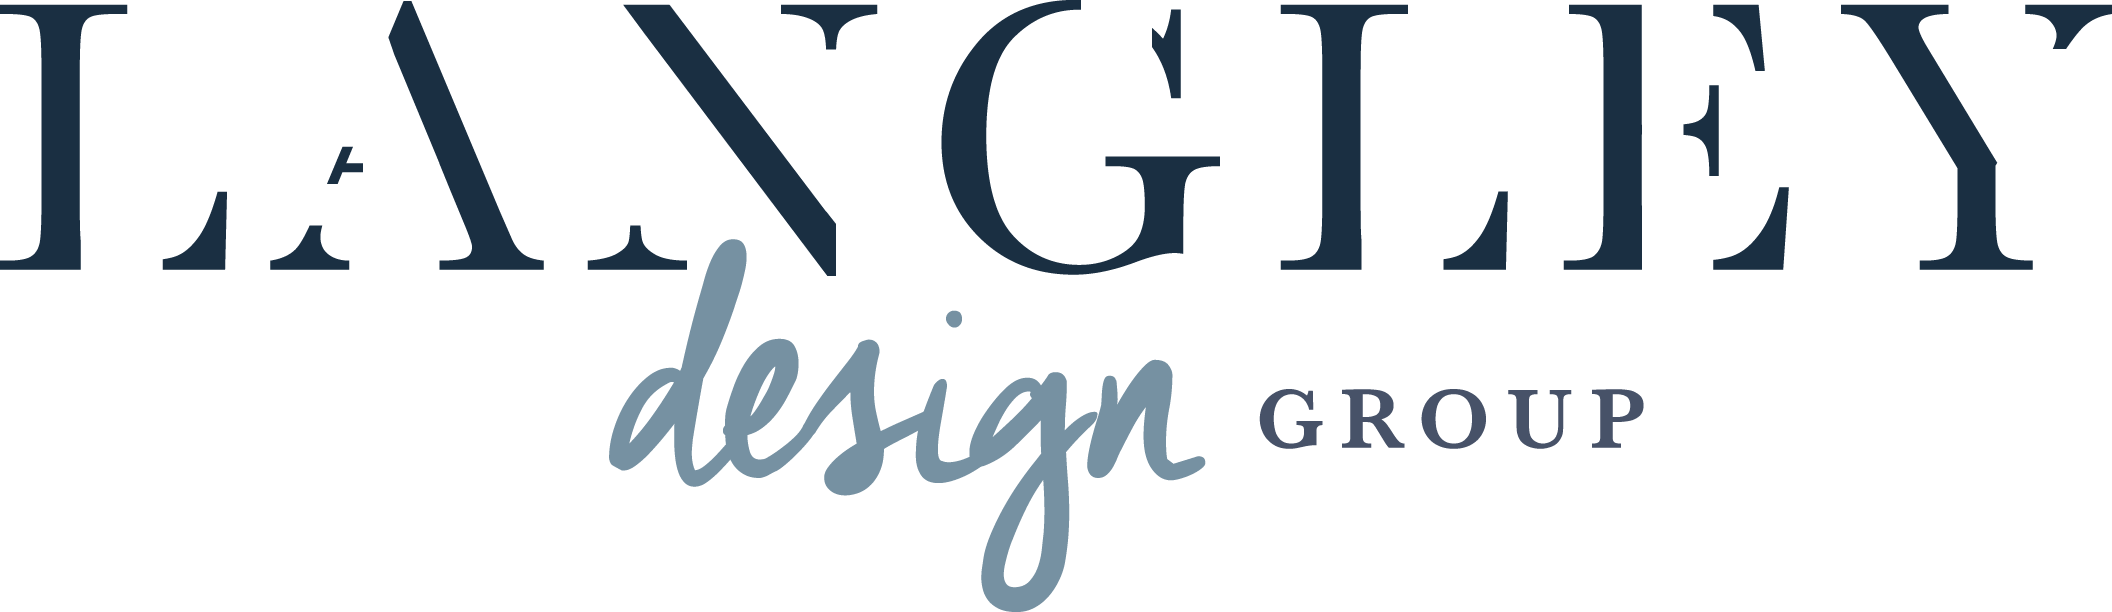 Langley Design Group